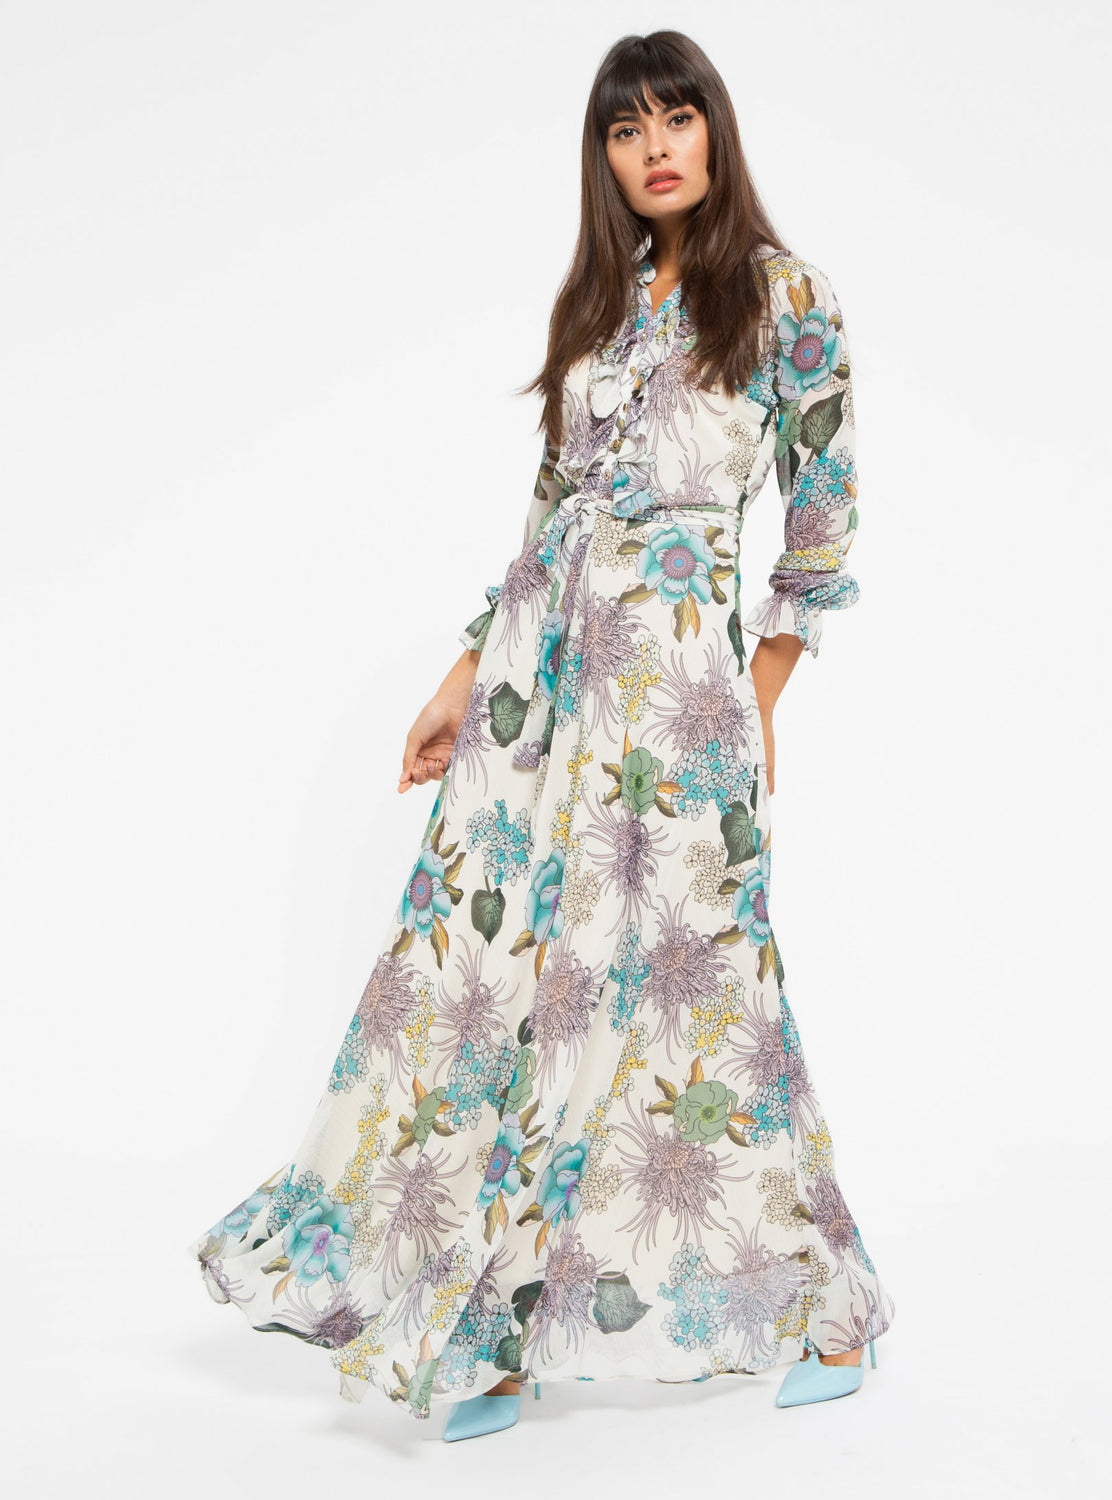 71b73026435 ... STORE WF Flower Maxi Dress Modest Long Loose Fitted Dress with Long  Sleeves and Floral Prints ...